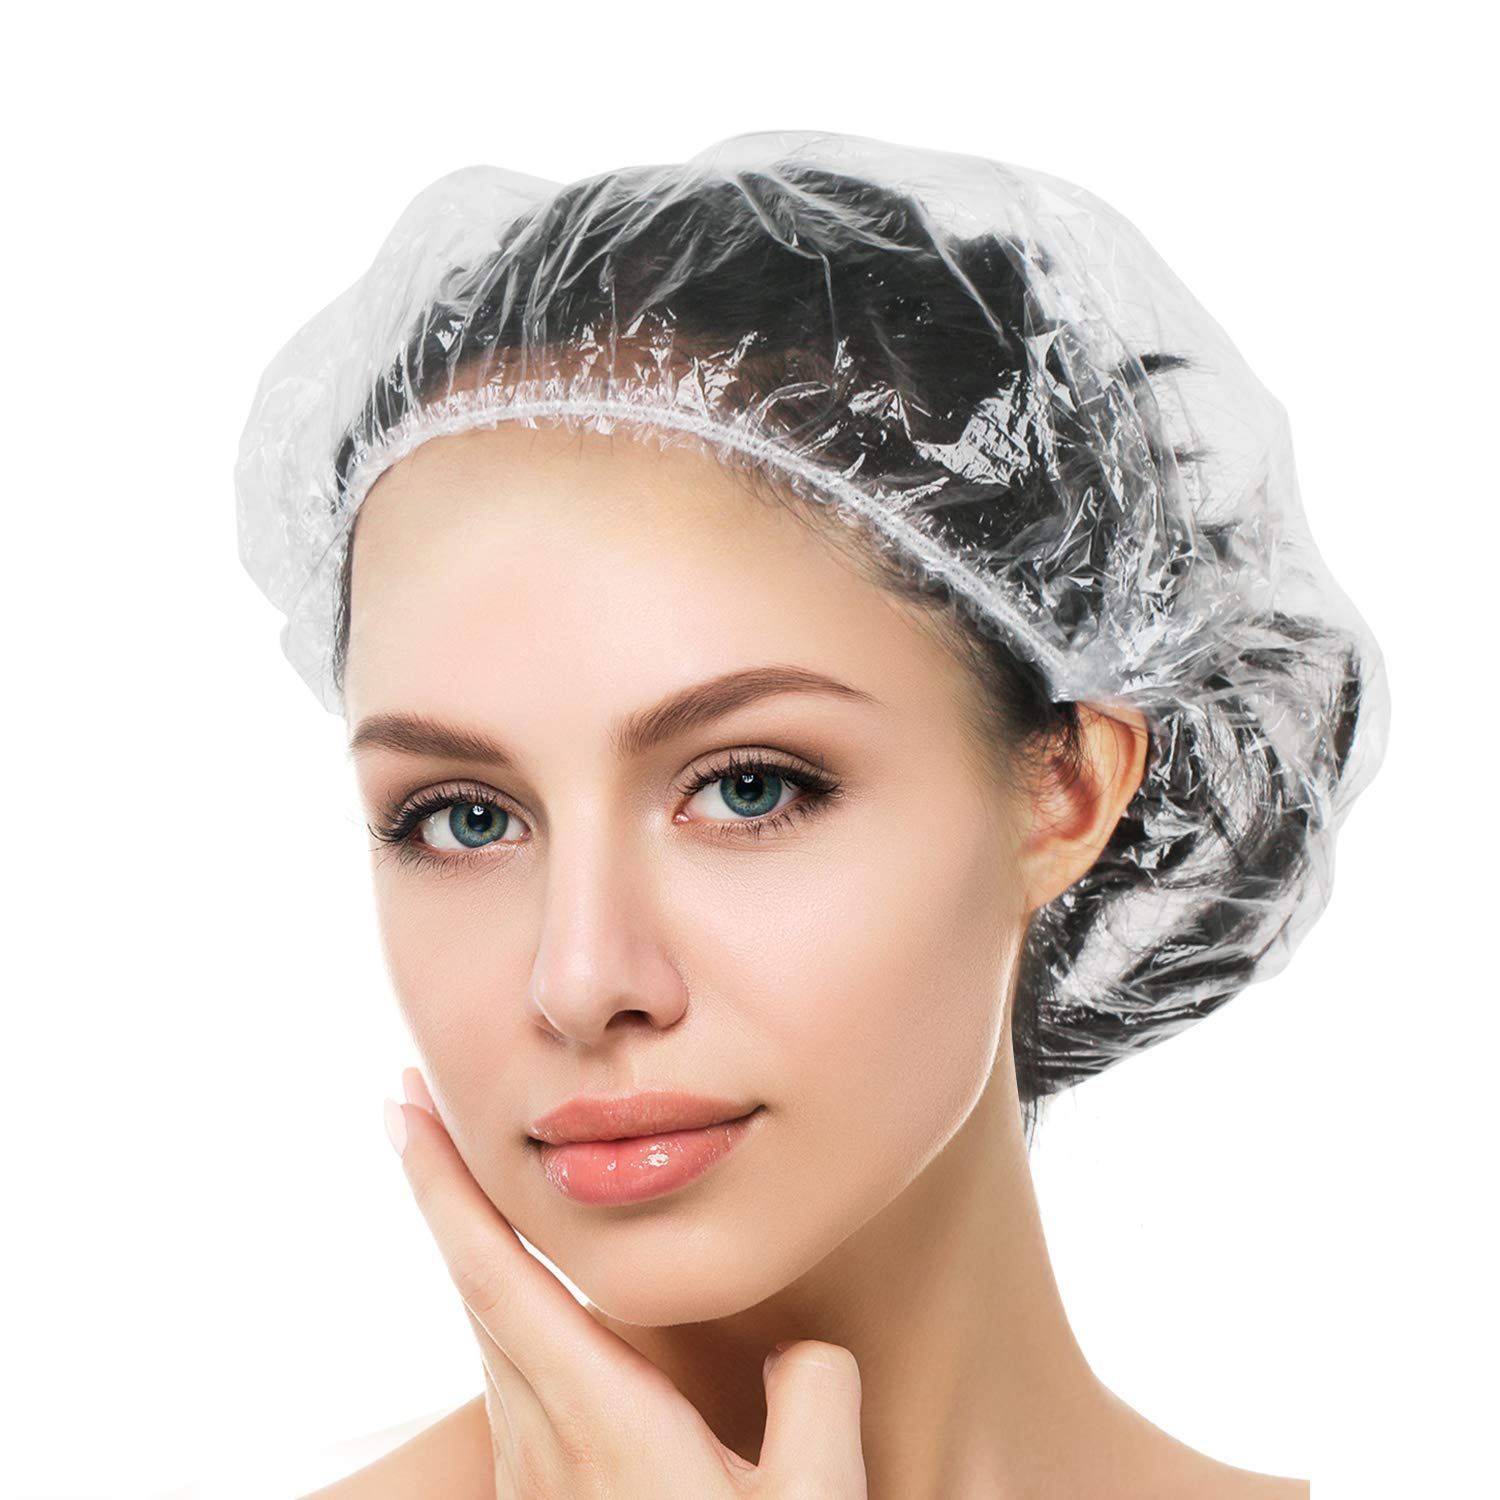 Shower Caps Disposable, 30 Pcs Plastic Clear Thickening Bath Hair Cap, Conditioning Steam Cap for Hair Treatment, Women Spa, Travel, Men and Hotel (30PCS) : Beauty